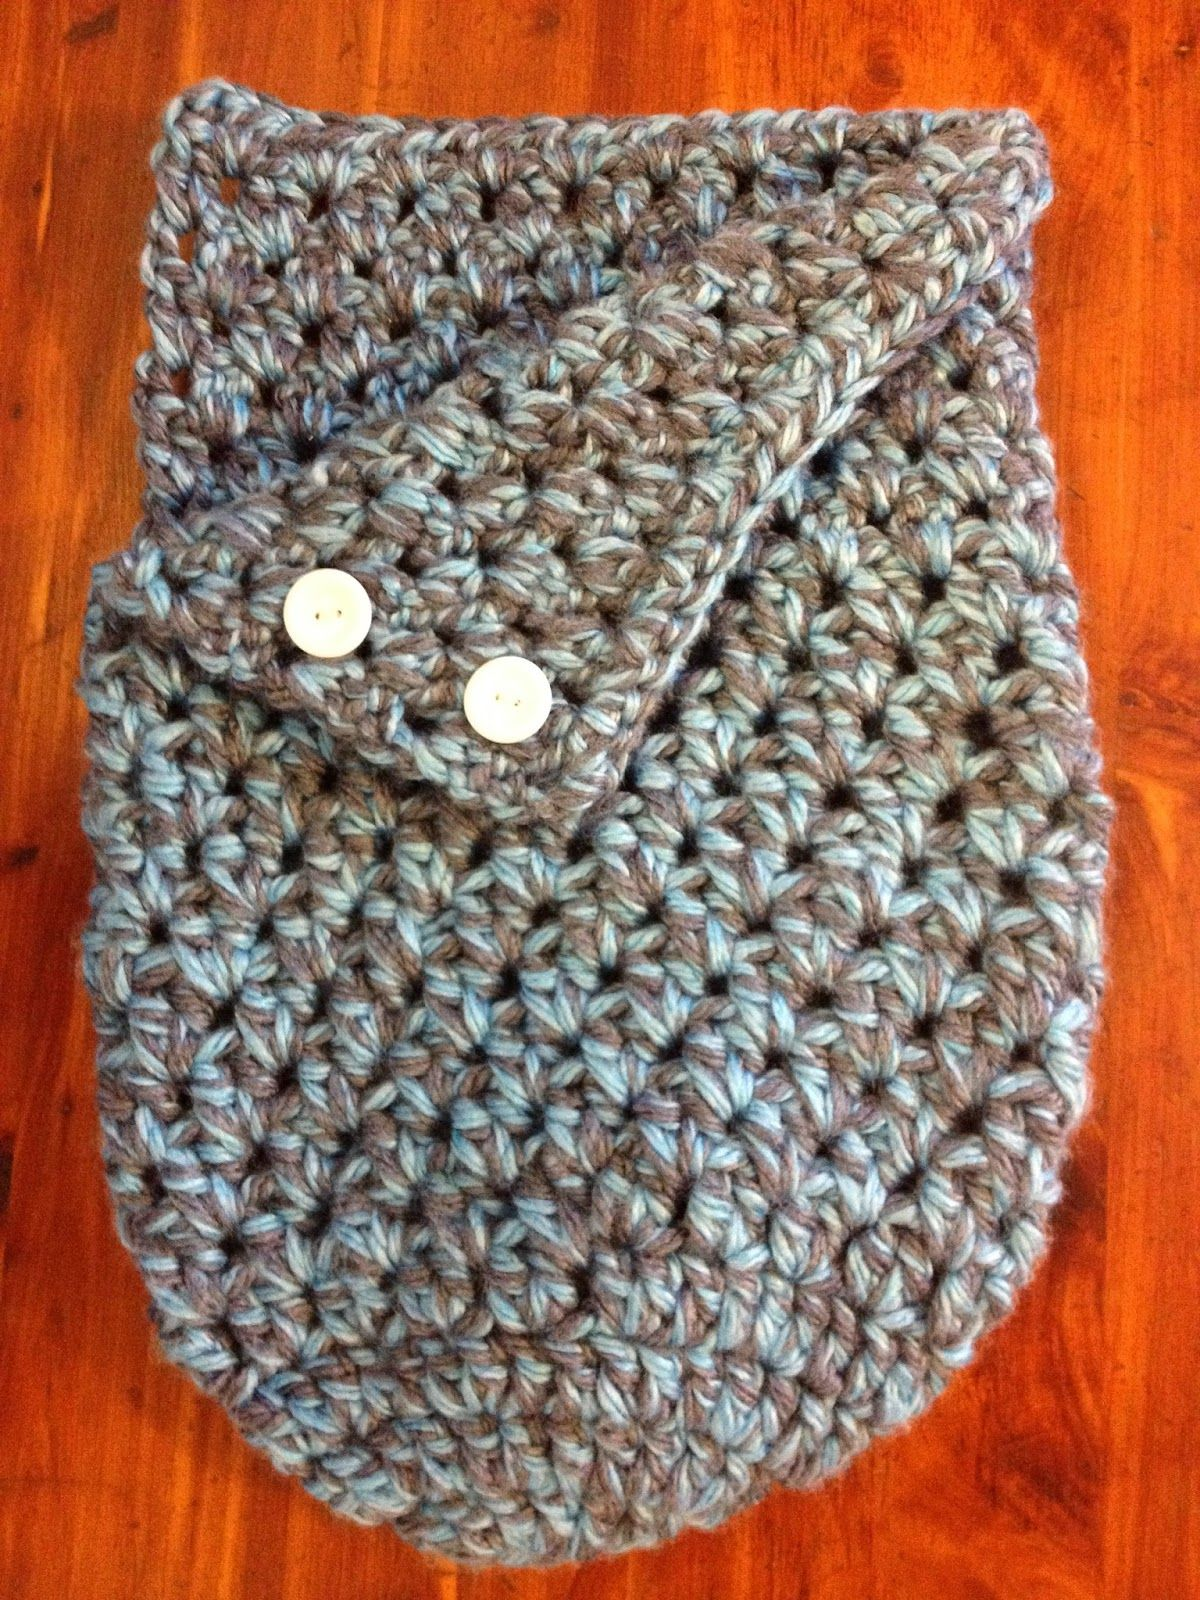 My Crocheted World: All-Wrapped-Up Crochet Baby Cocoon | For babies ...